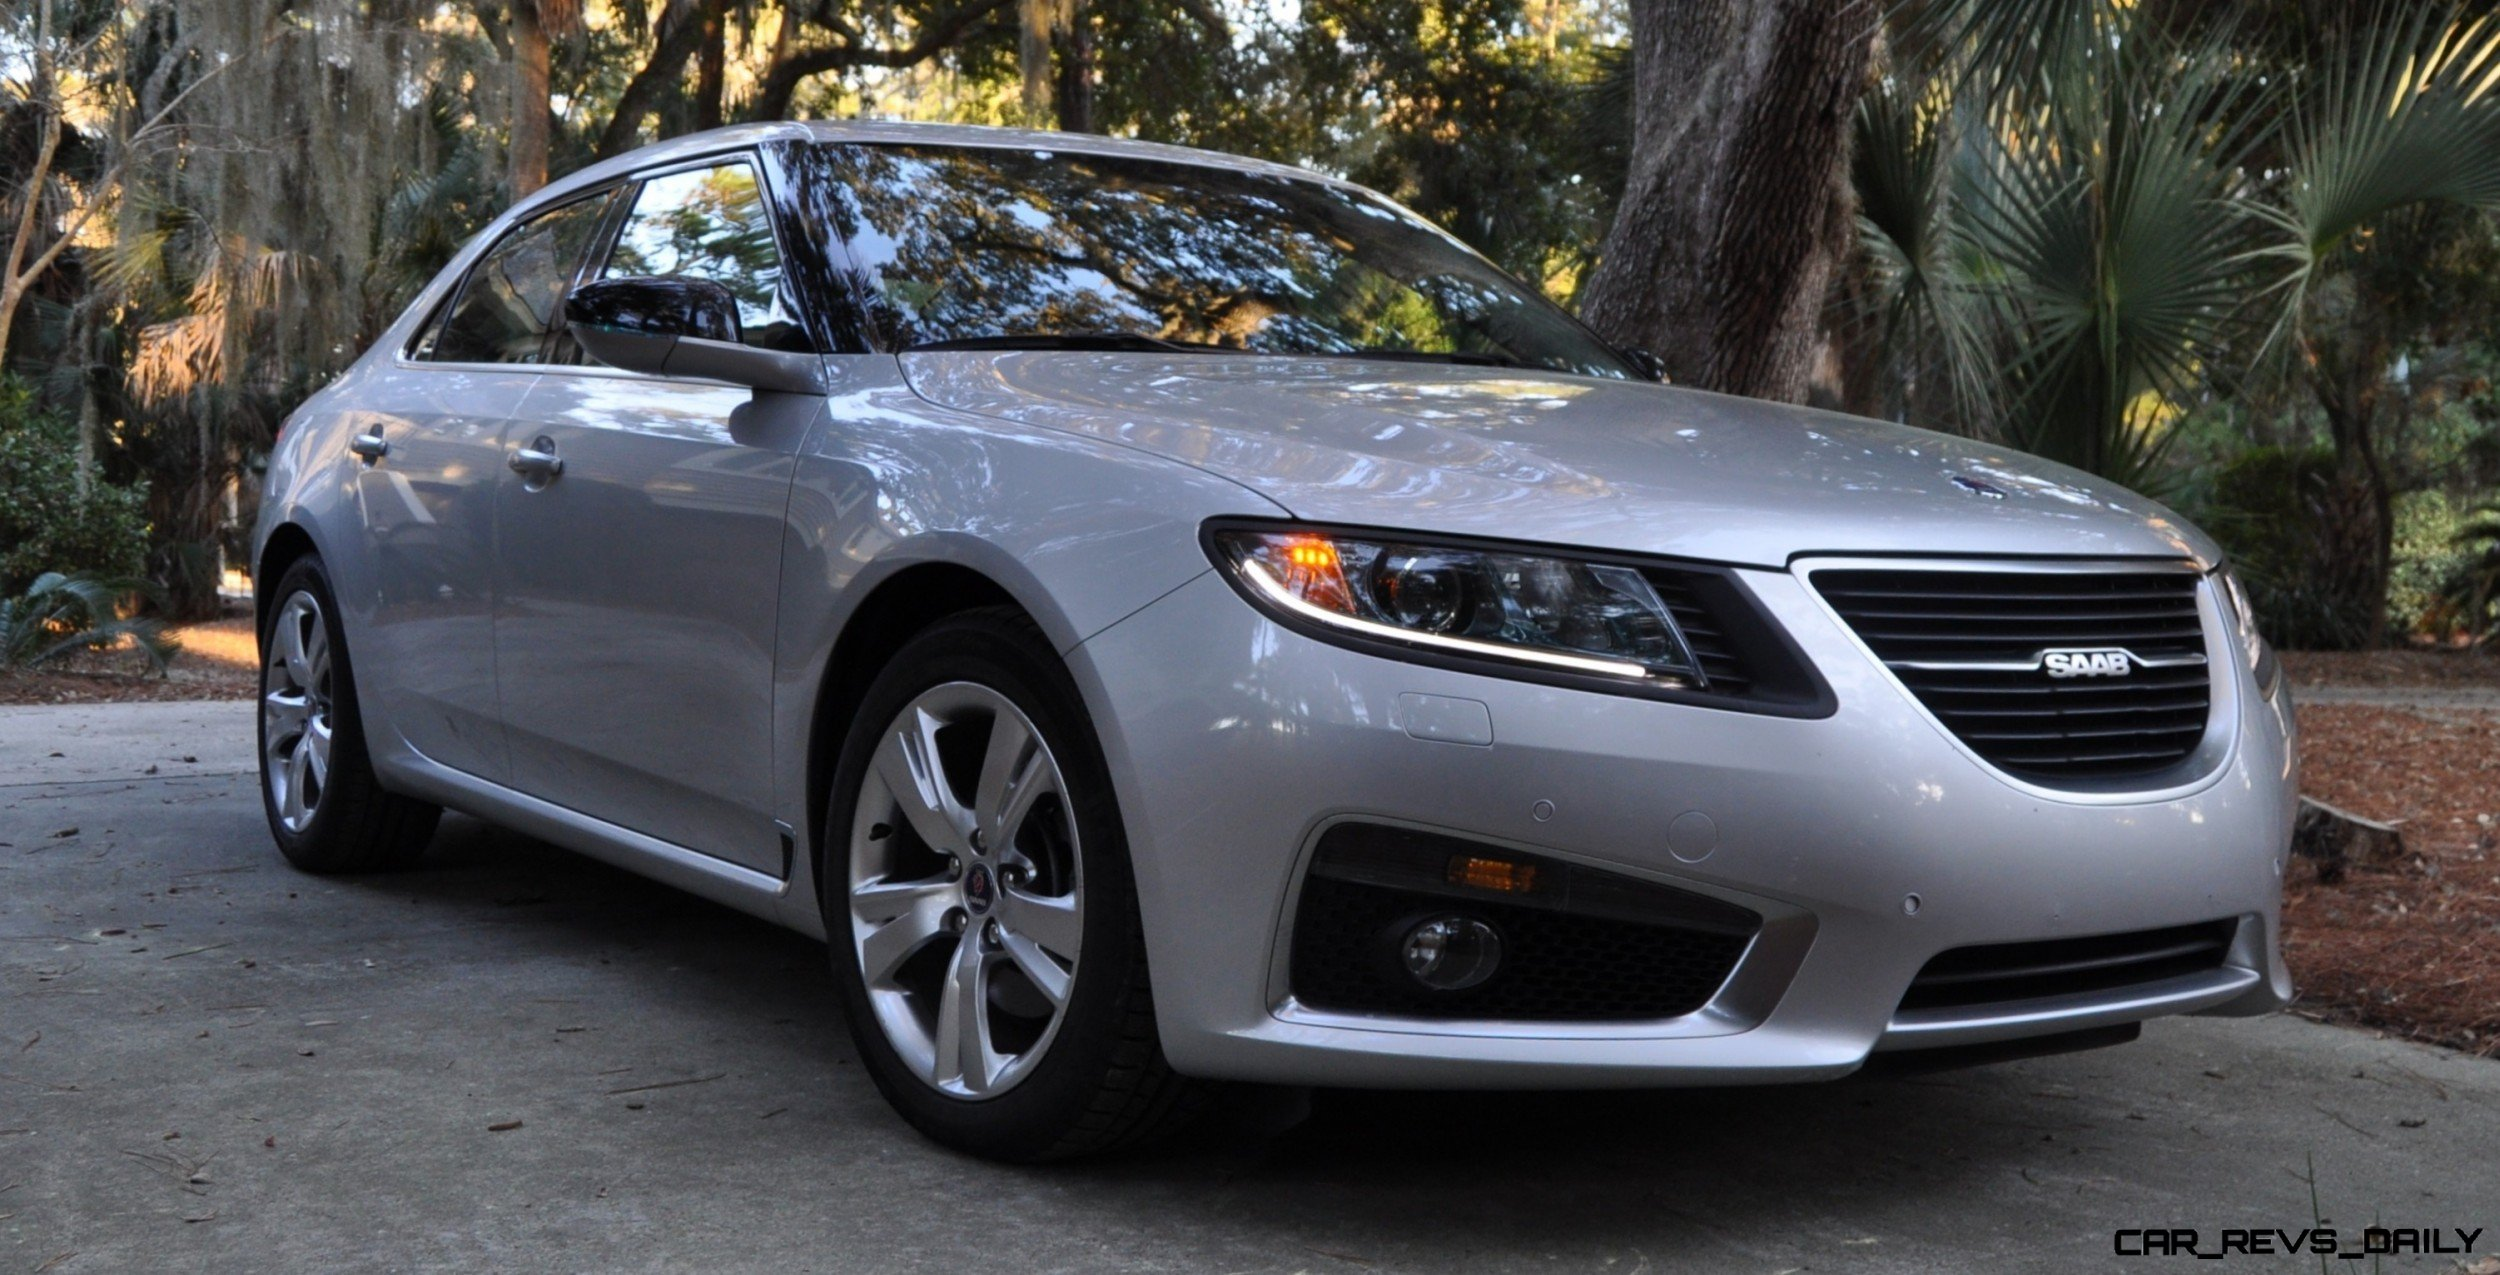 2013 SAAB 9-5 Turbo6 XWD Aero -- 48 HQ Photos -- The Coolest AWD, Turbo V6 Limo You Cannot Buy 6